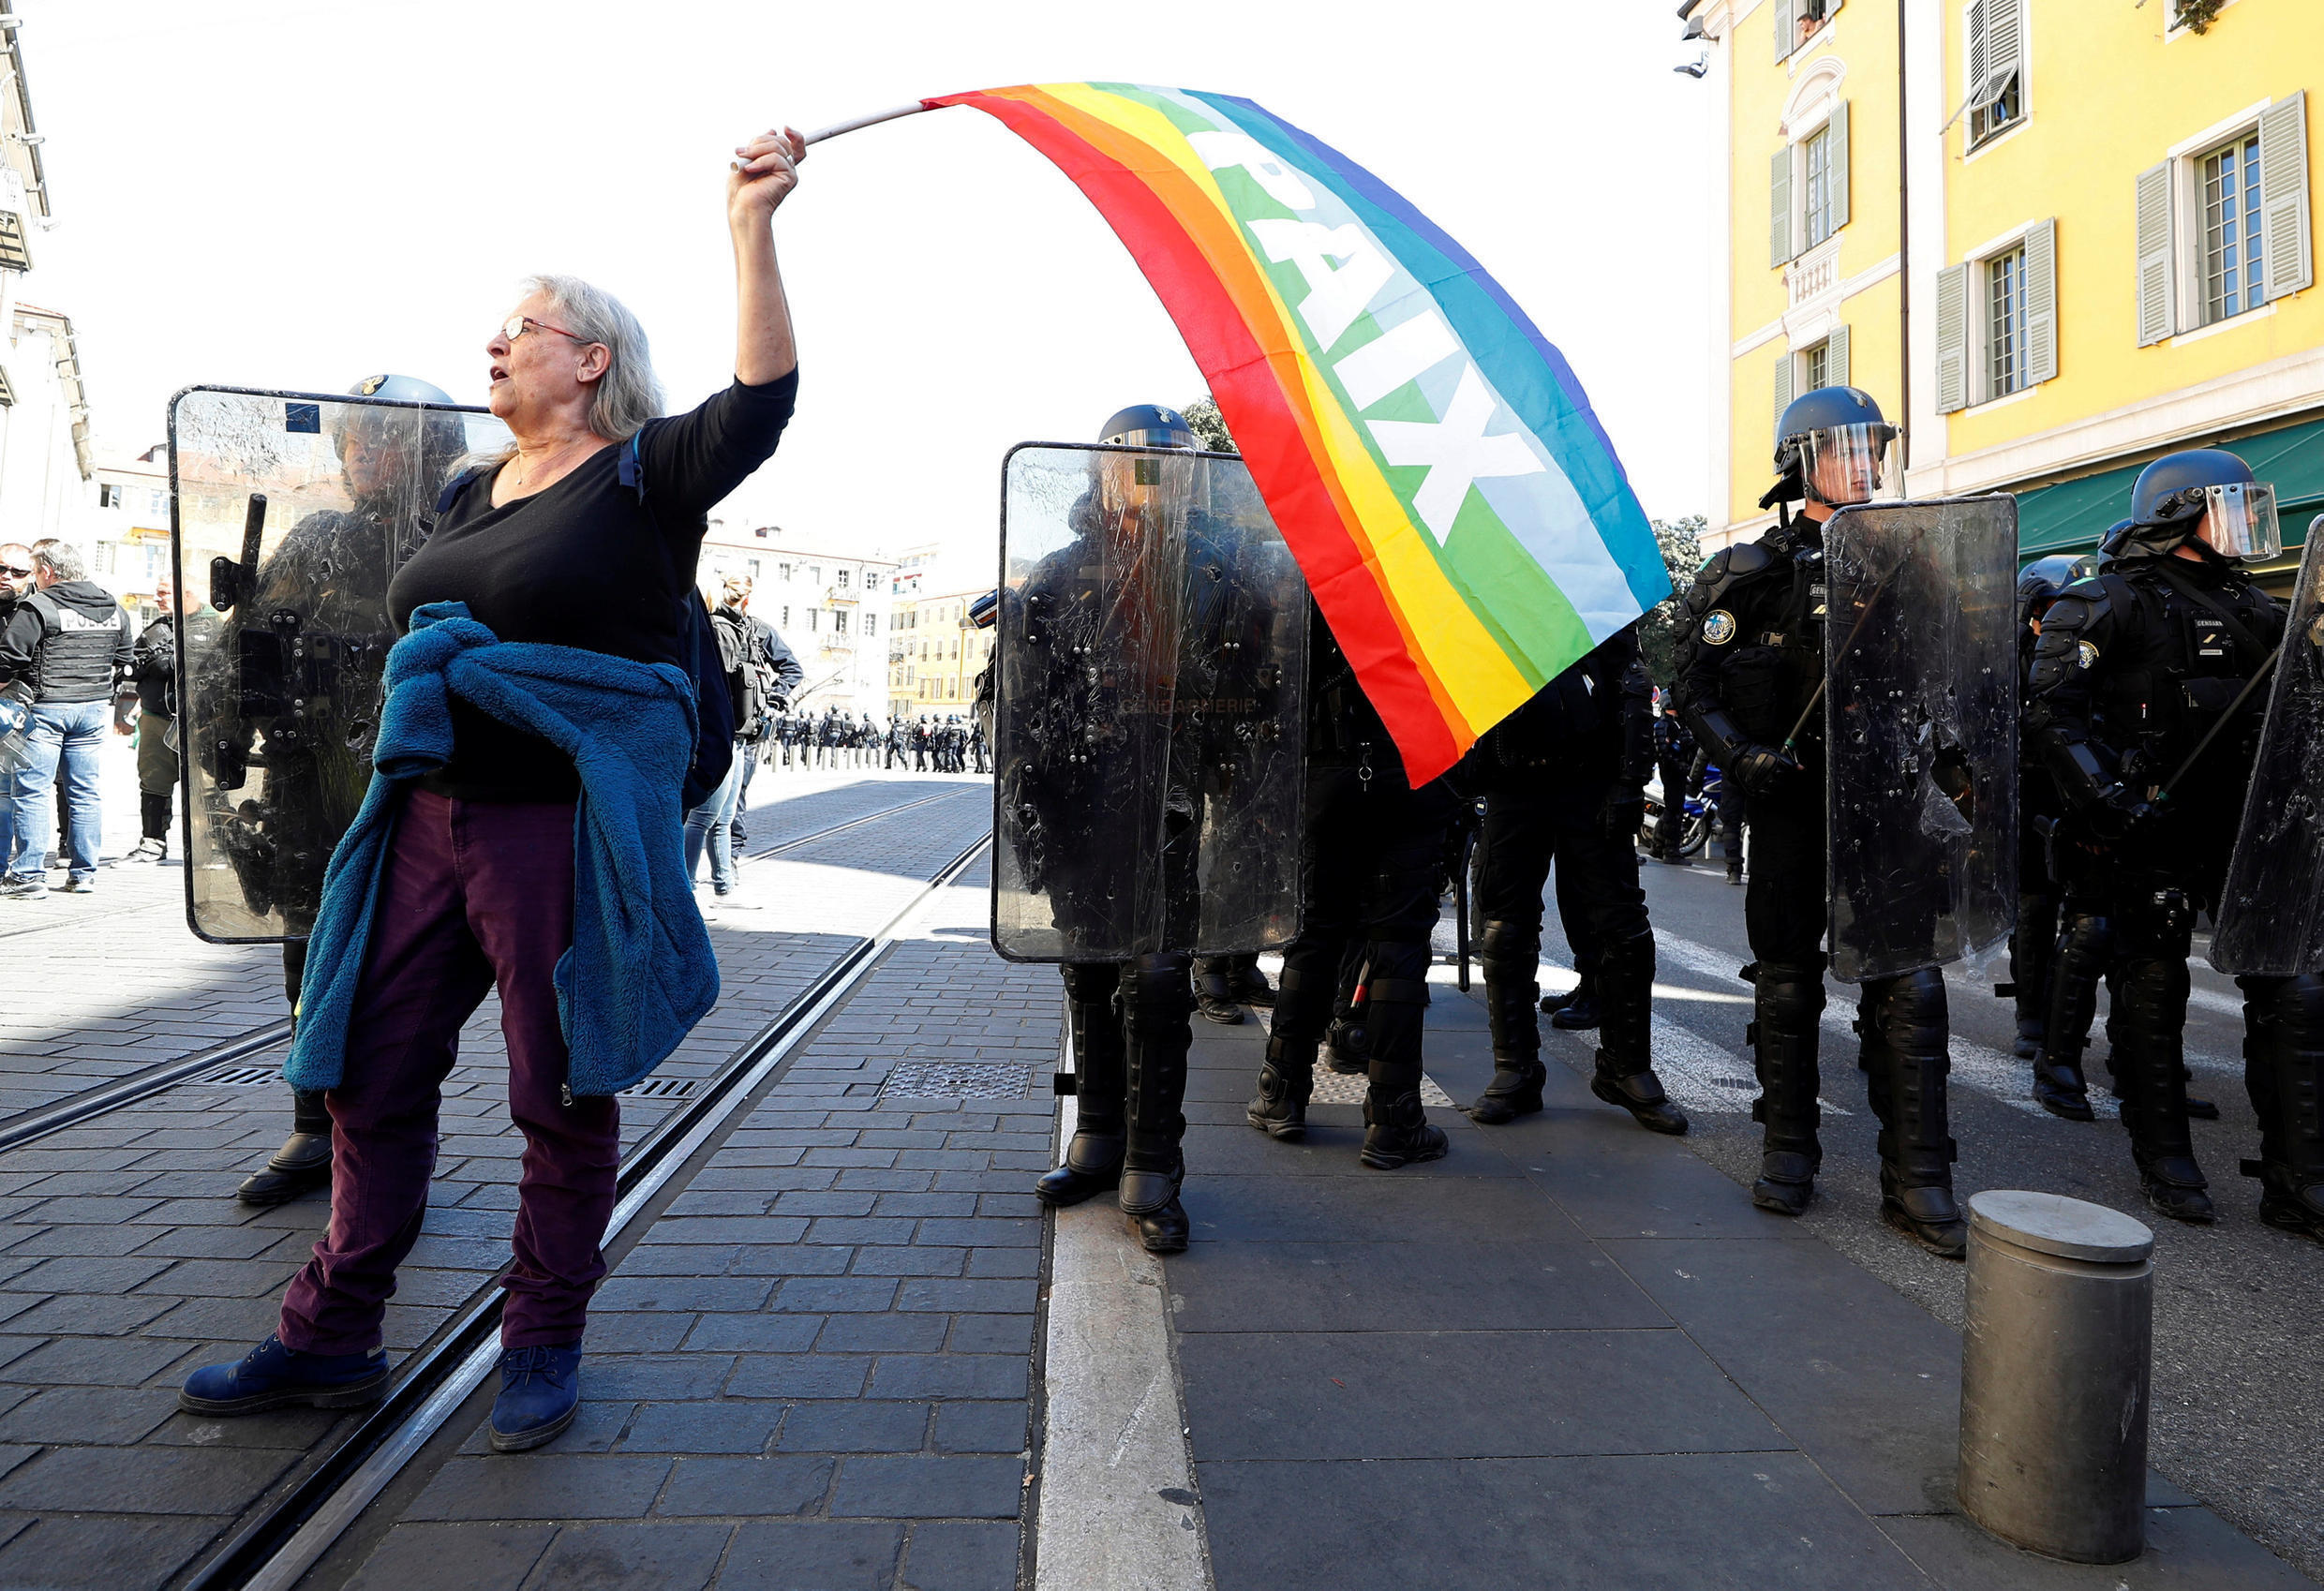 Activist Genevieve Legay protesting in Nice before she was injured on 23 March, 2019.